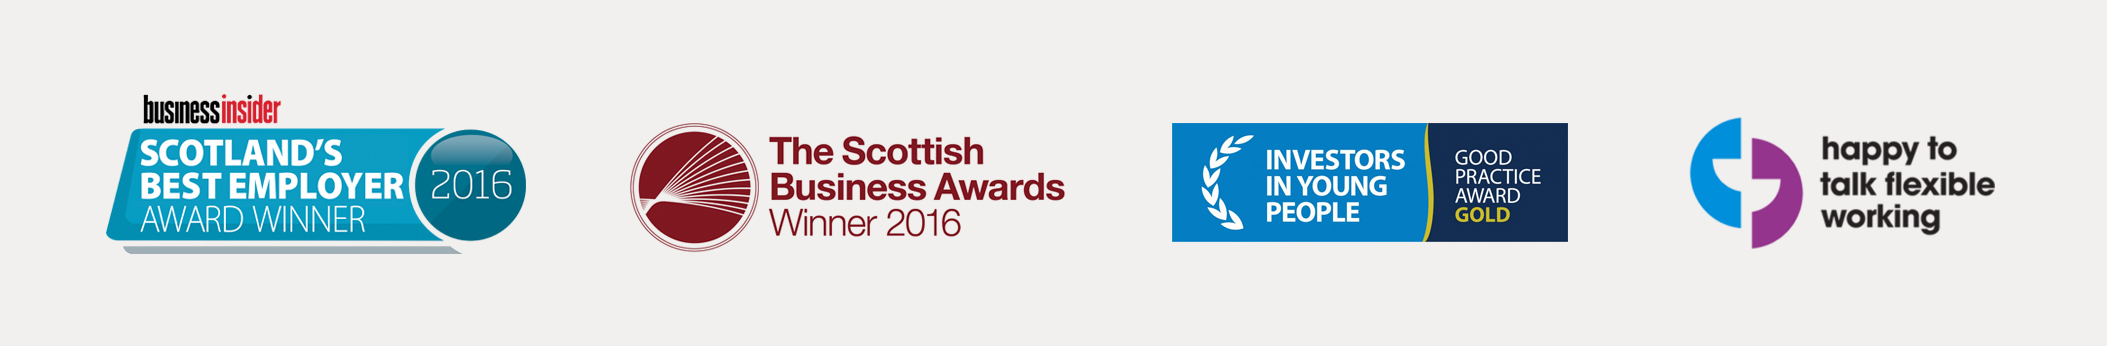 Business Insider Scotlands Best Employer, Scottish Business Awards, Investors in young people